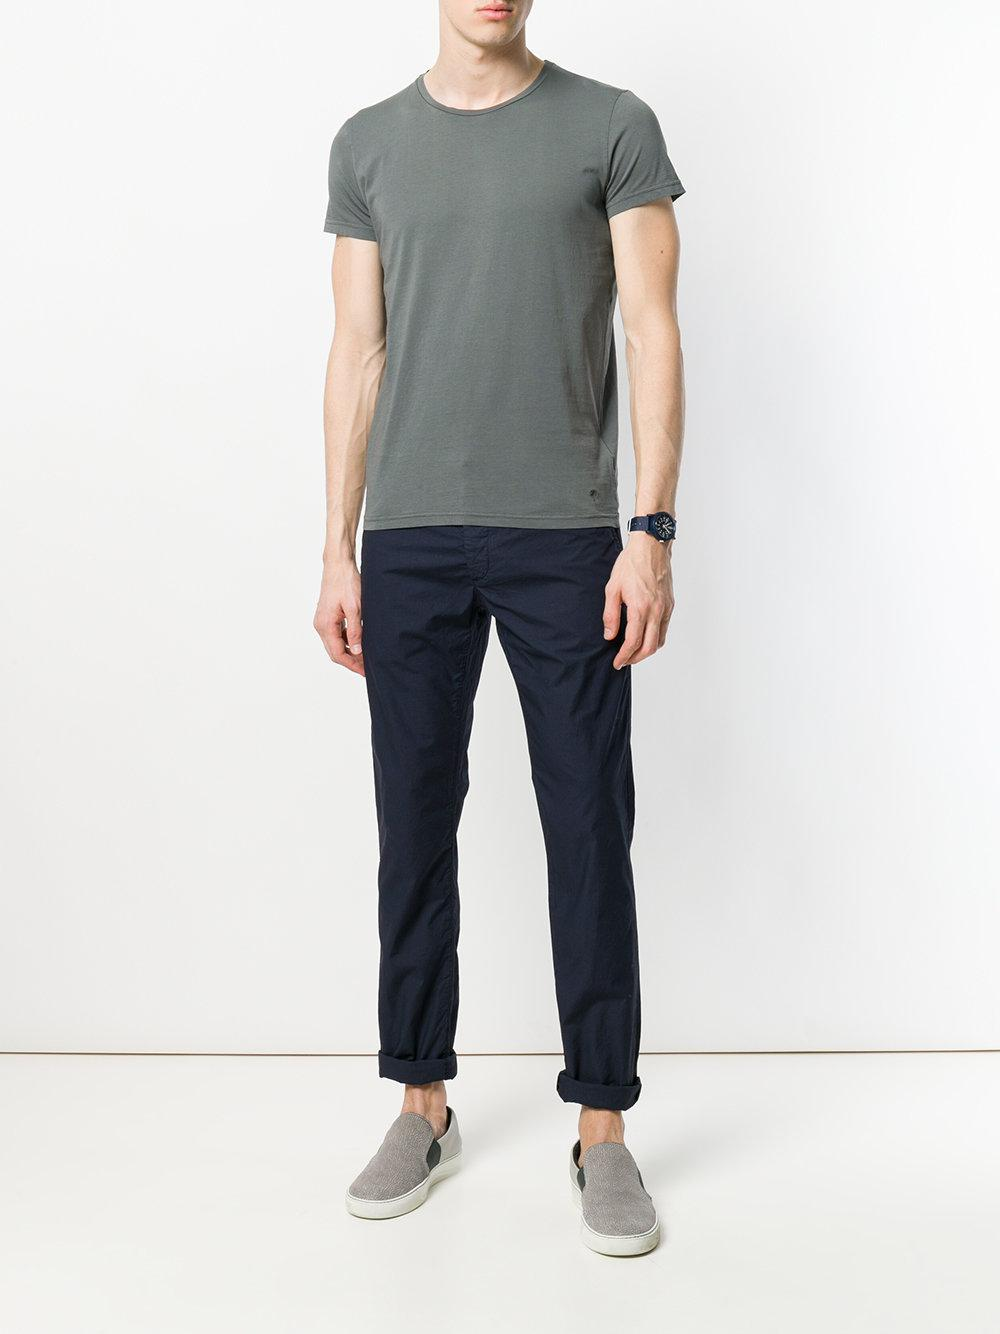 Buy Cheap New Arrival Outlet Perfect classic chinos - Blue Tomas Maier Clearance New Styles For Sale Cheap Price From China Cheap Sale Original pi2lPWCW2